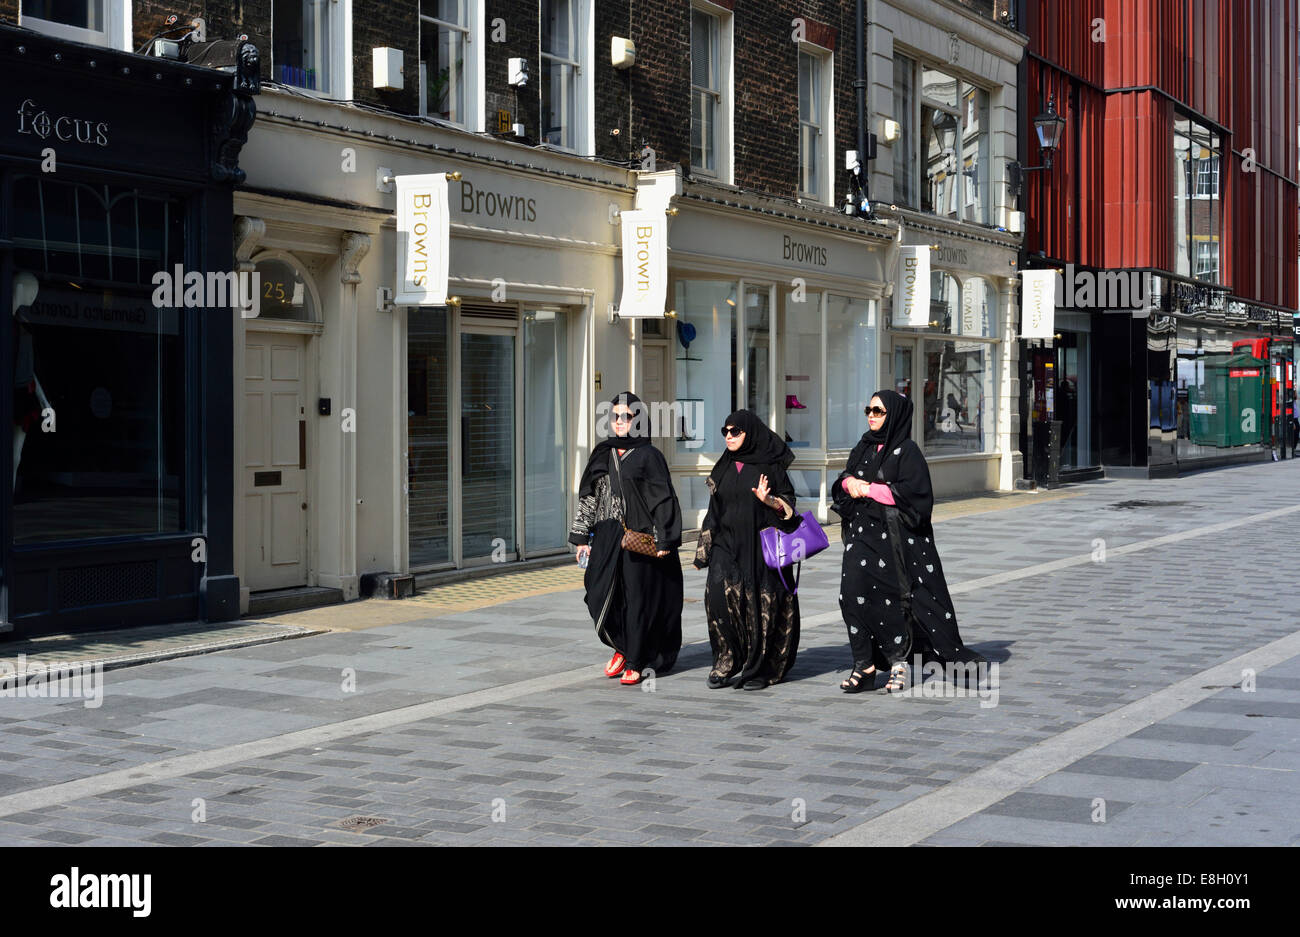 Muslim women in traditional clothing, South Molton Street, Mayfair, London W1, United Kingdom - Stock Image